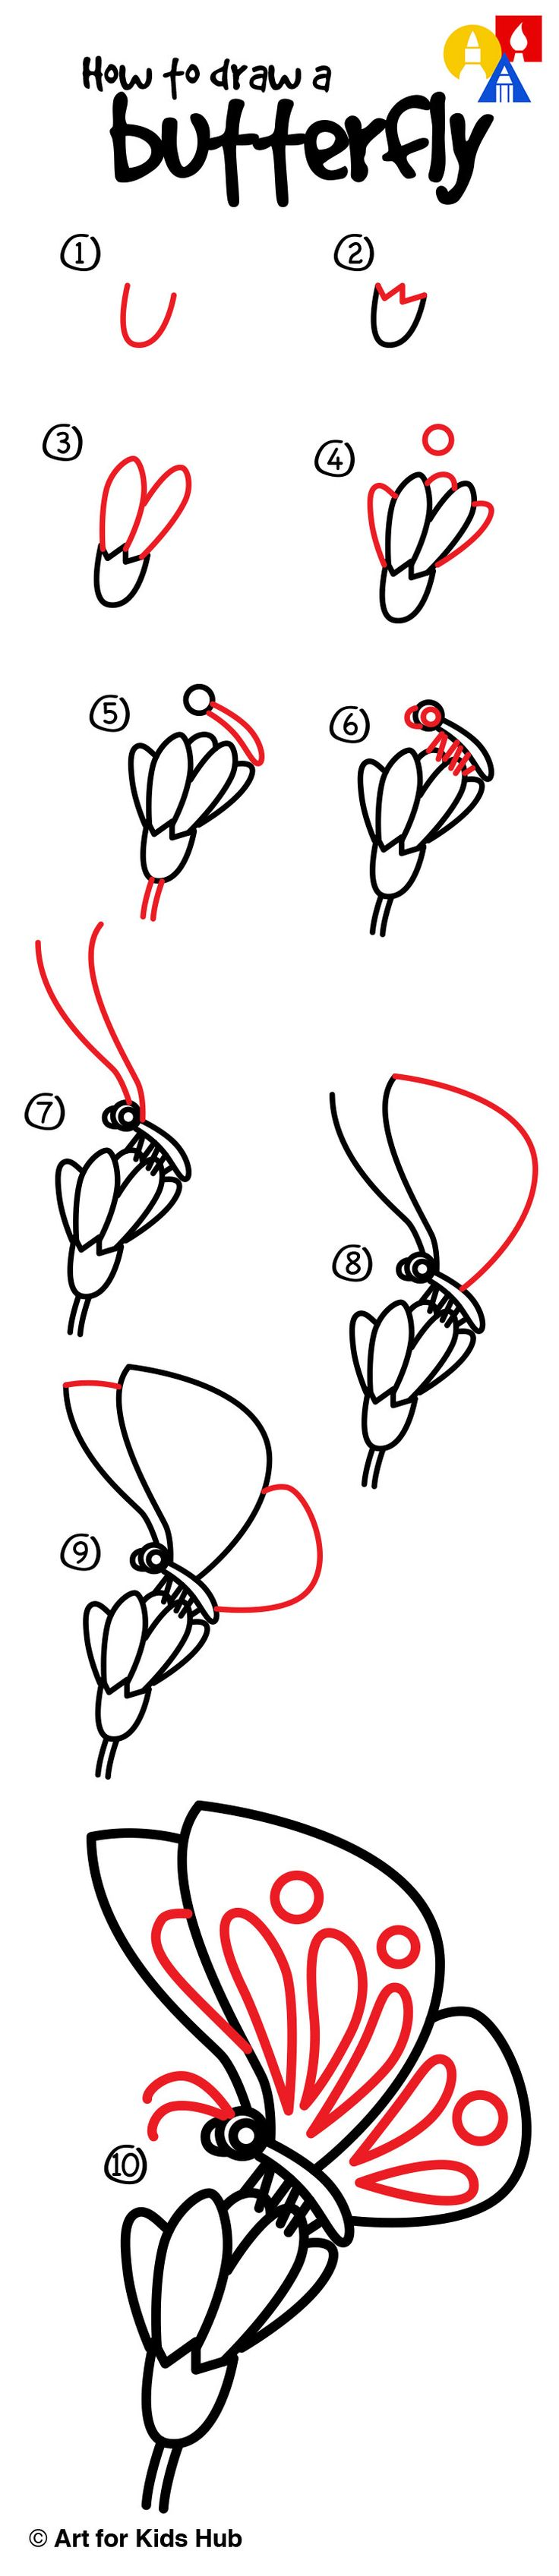 How To Draw A Butterfly On A Flower - Art For Kids Hub ...